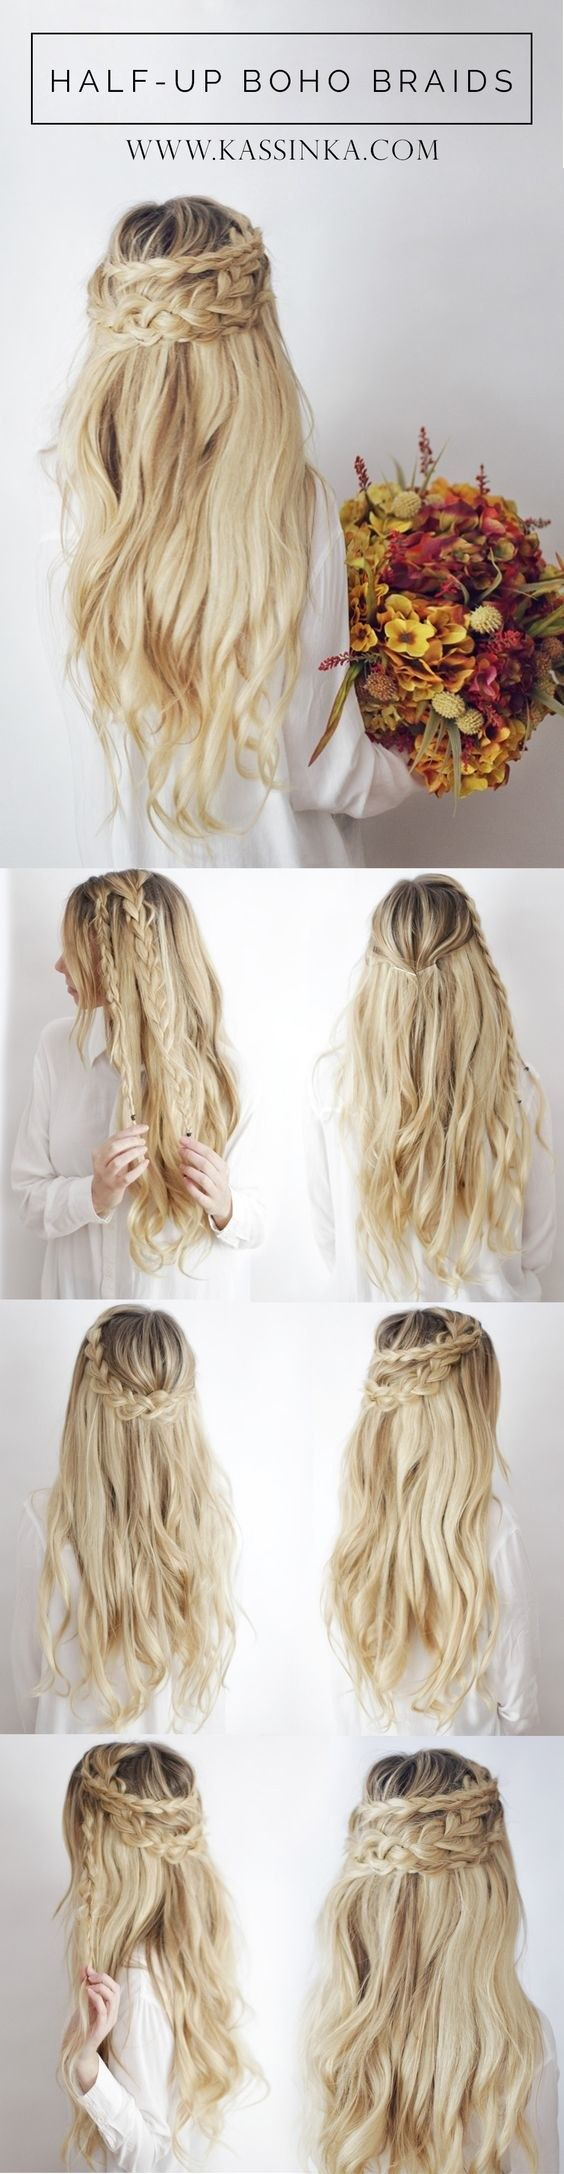 Half-Up Boho Braids | 17 Surprisingly Easy Ways To Style Your Hair In Braids And Twists